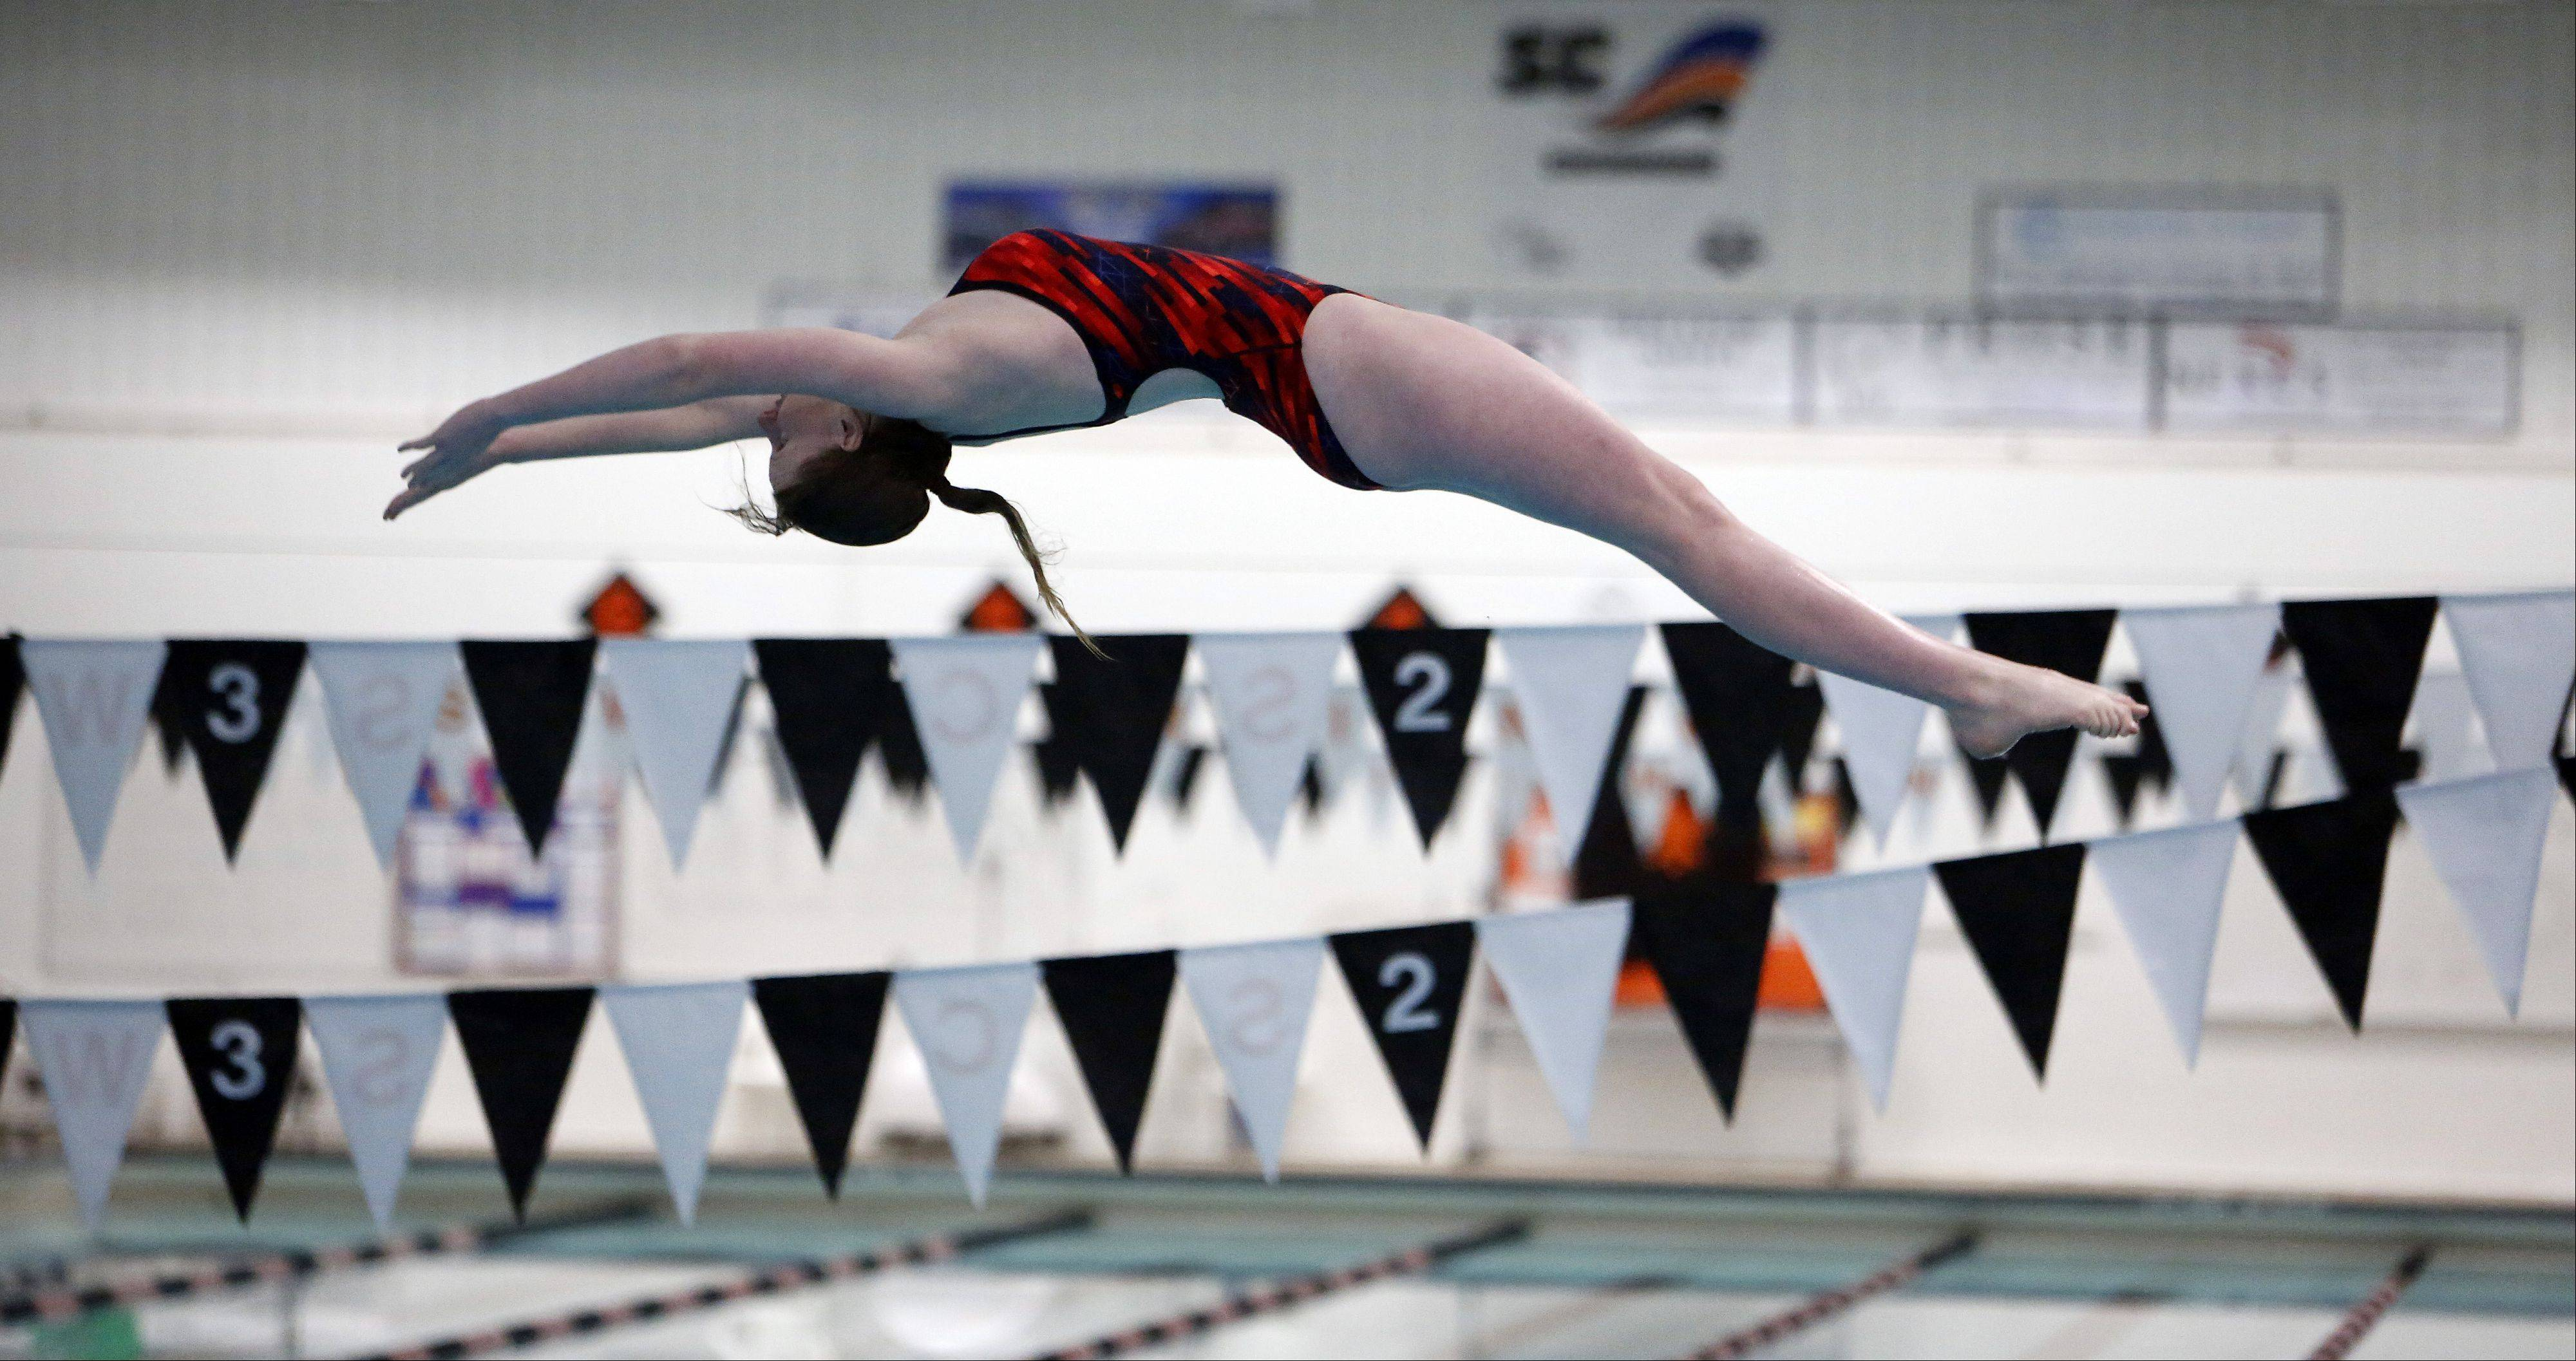 Katy Balk of South Elgin competes during the sectional meet at St. Charles East on Saturday.